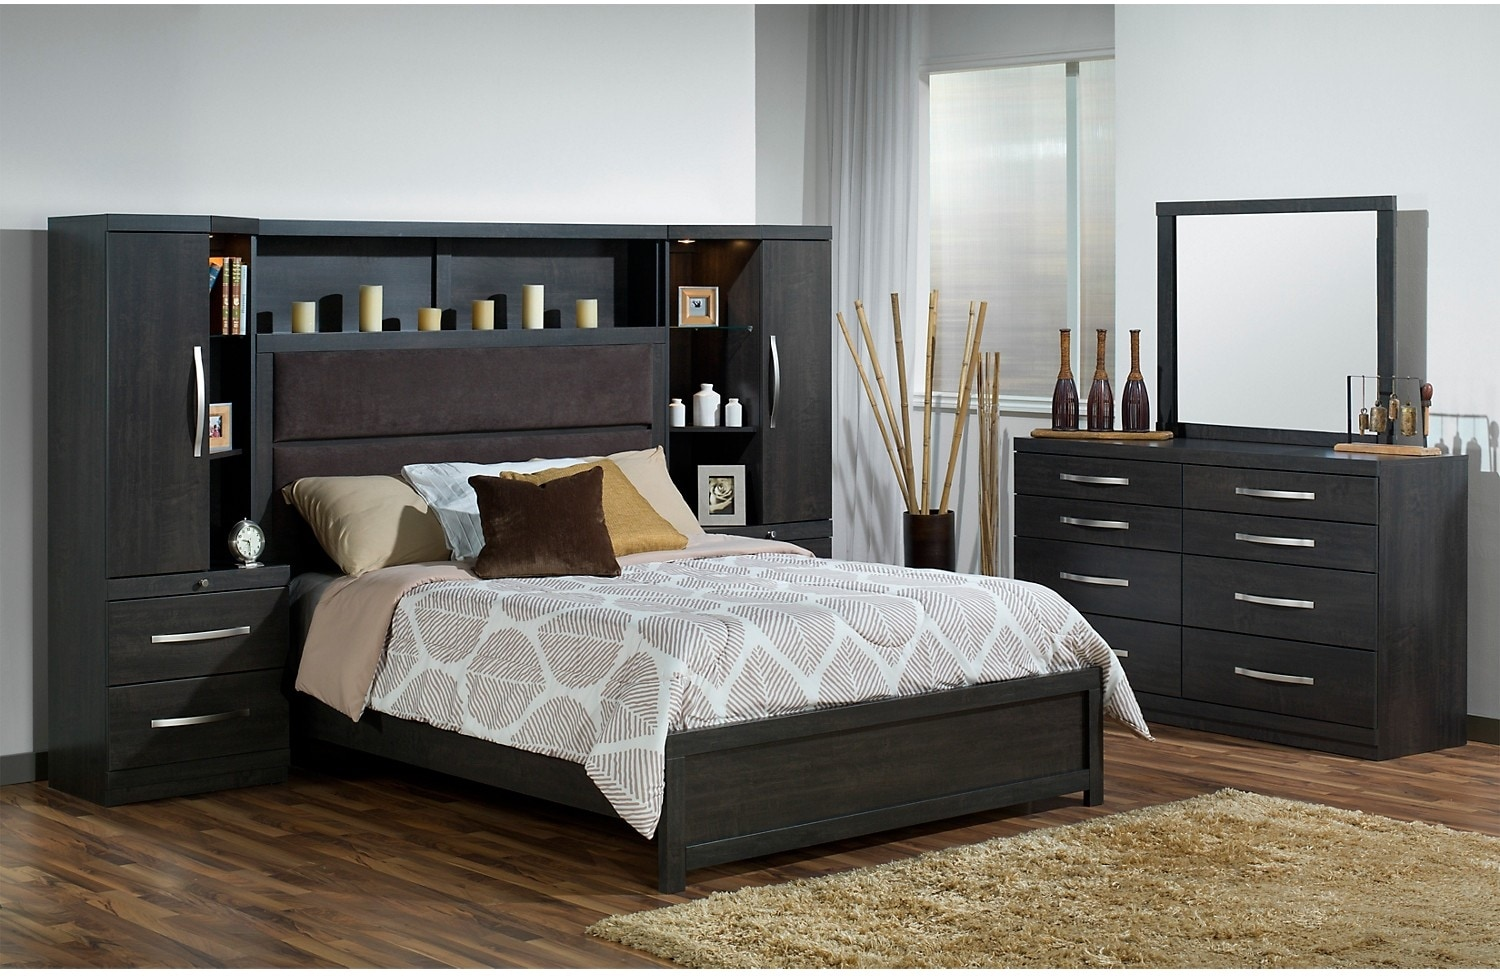 Willowdale queen 5 piece pier bedroom package the brick for Bedroom packages with mattress